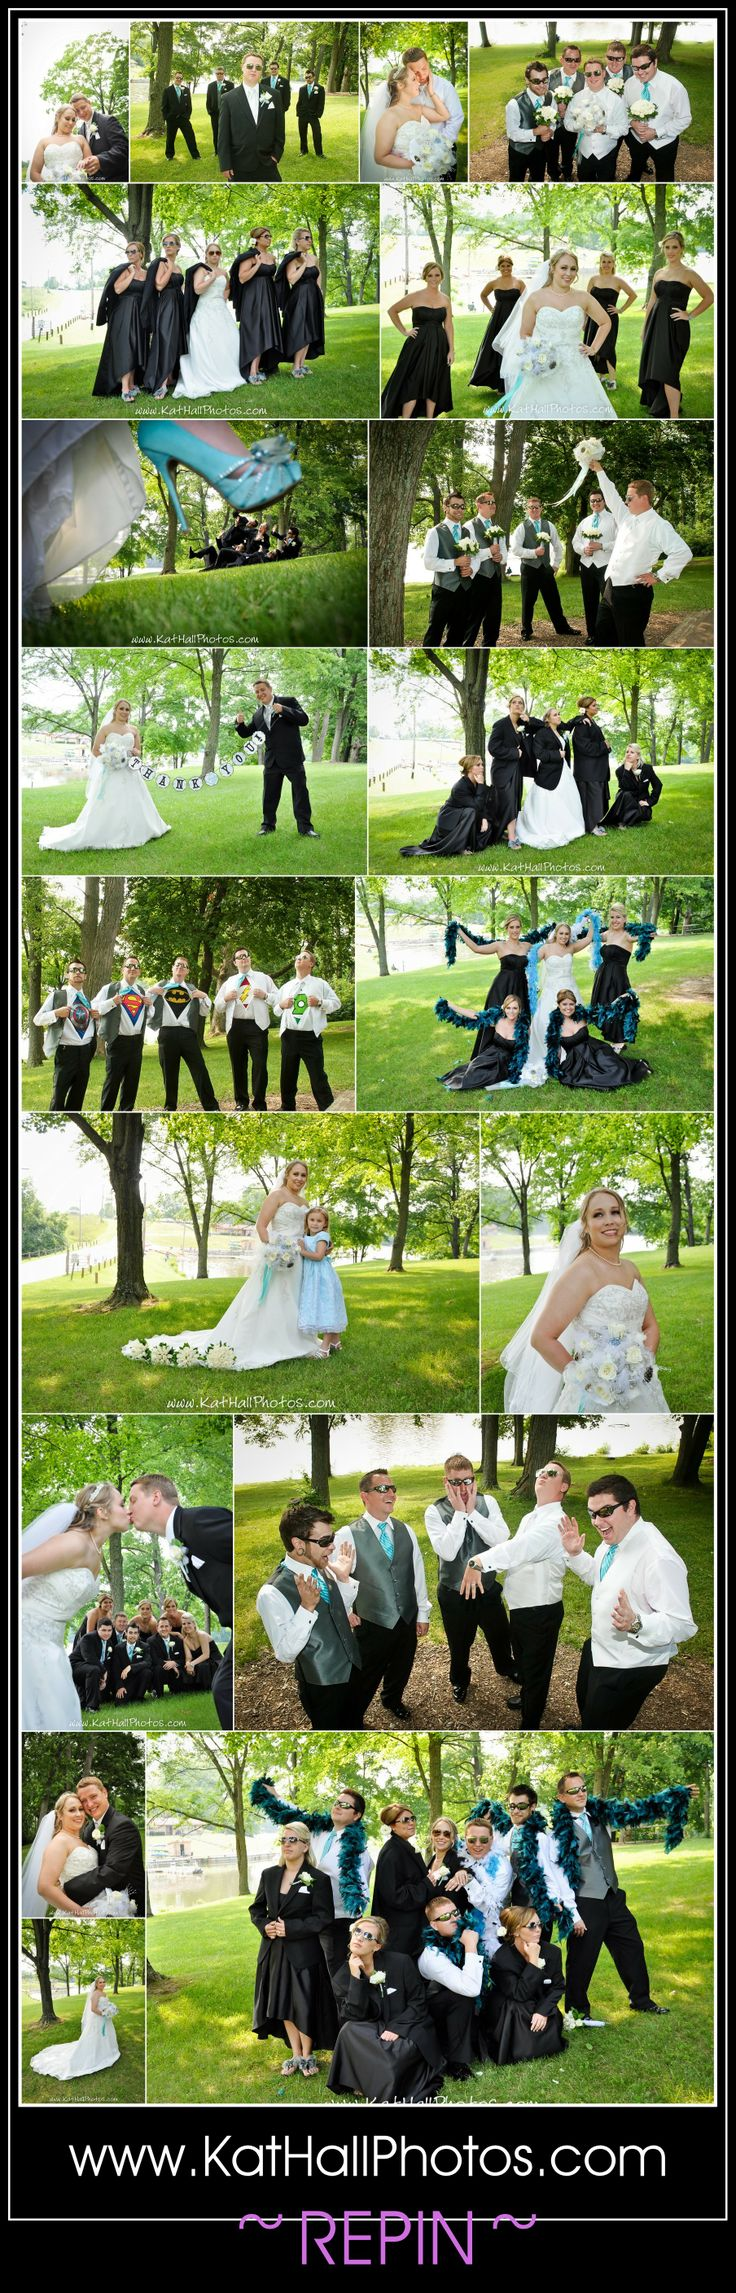 Fun Wedding Party Poses By Kat Hall Photography Weddingflowers Funwedding Weddingposes Weddingparty